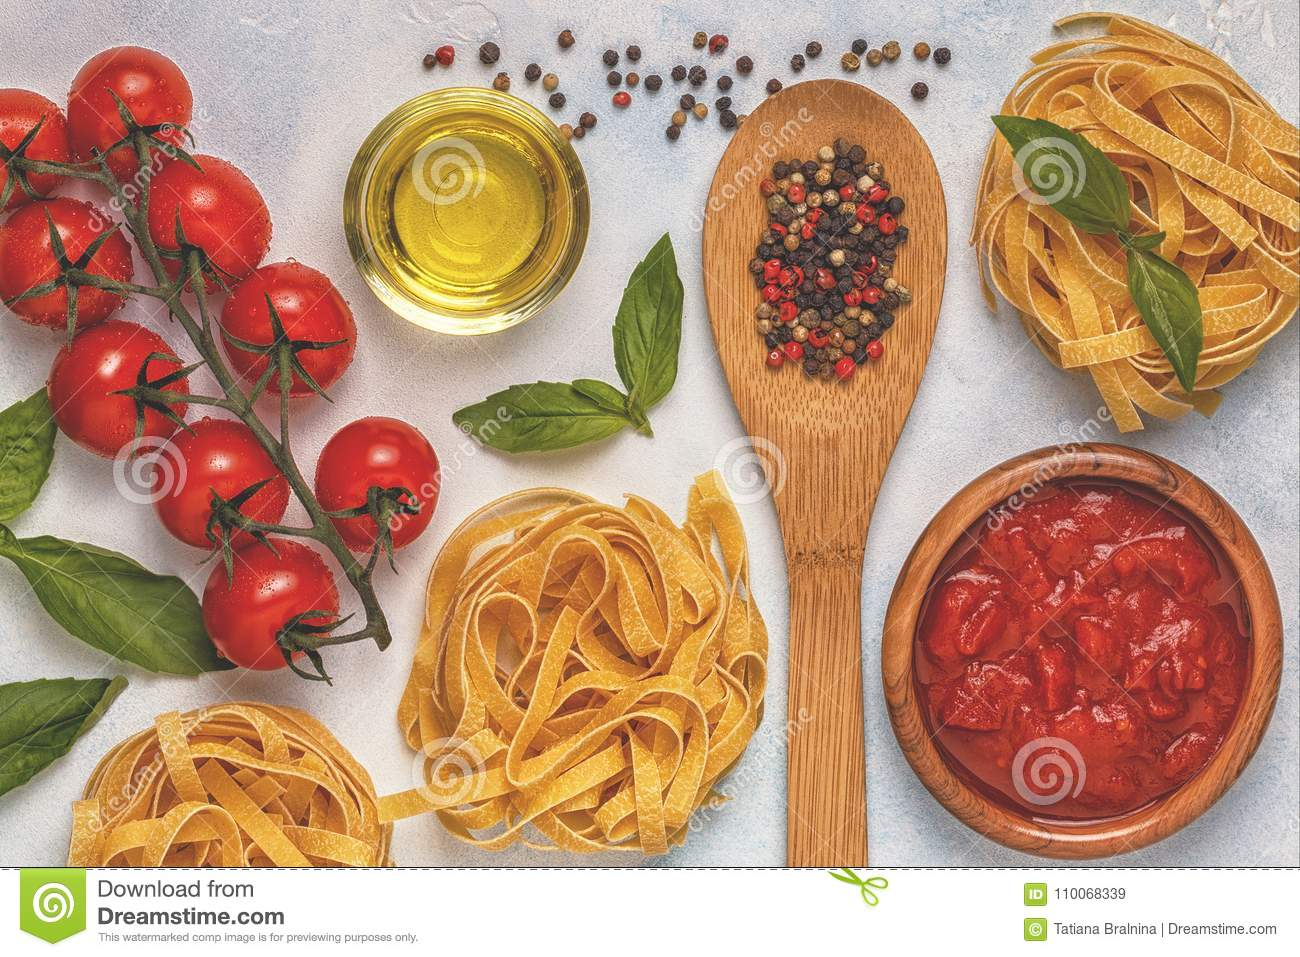 Fundo italiano do alimento com massa, especiarias e vegetais